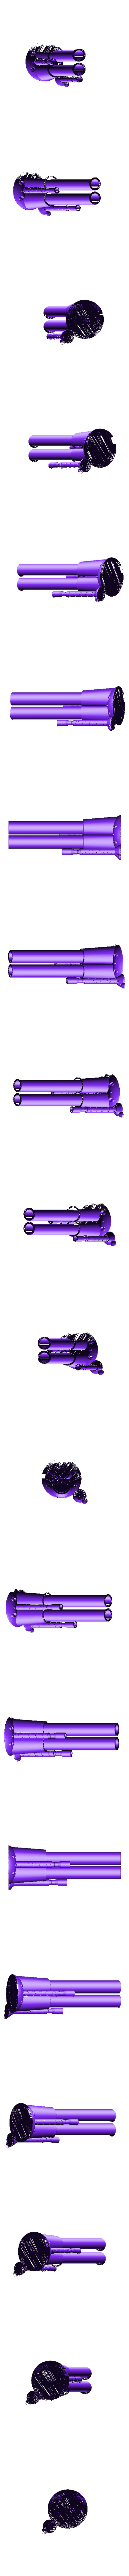 2_CANNON_NORMAL.stl Download free STL file IMPERIAL RAPID CANNON - ULTRA MEGA PACK ! • 3D printer template, yaemhay